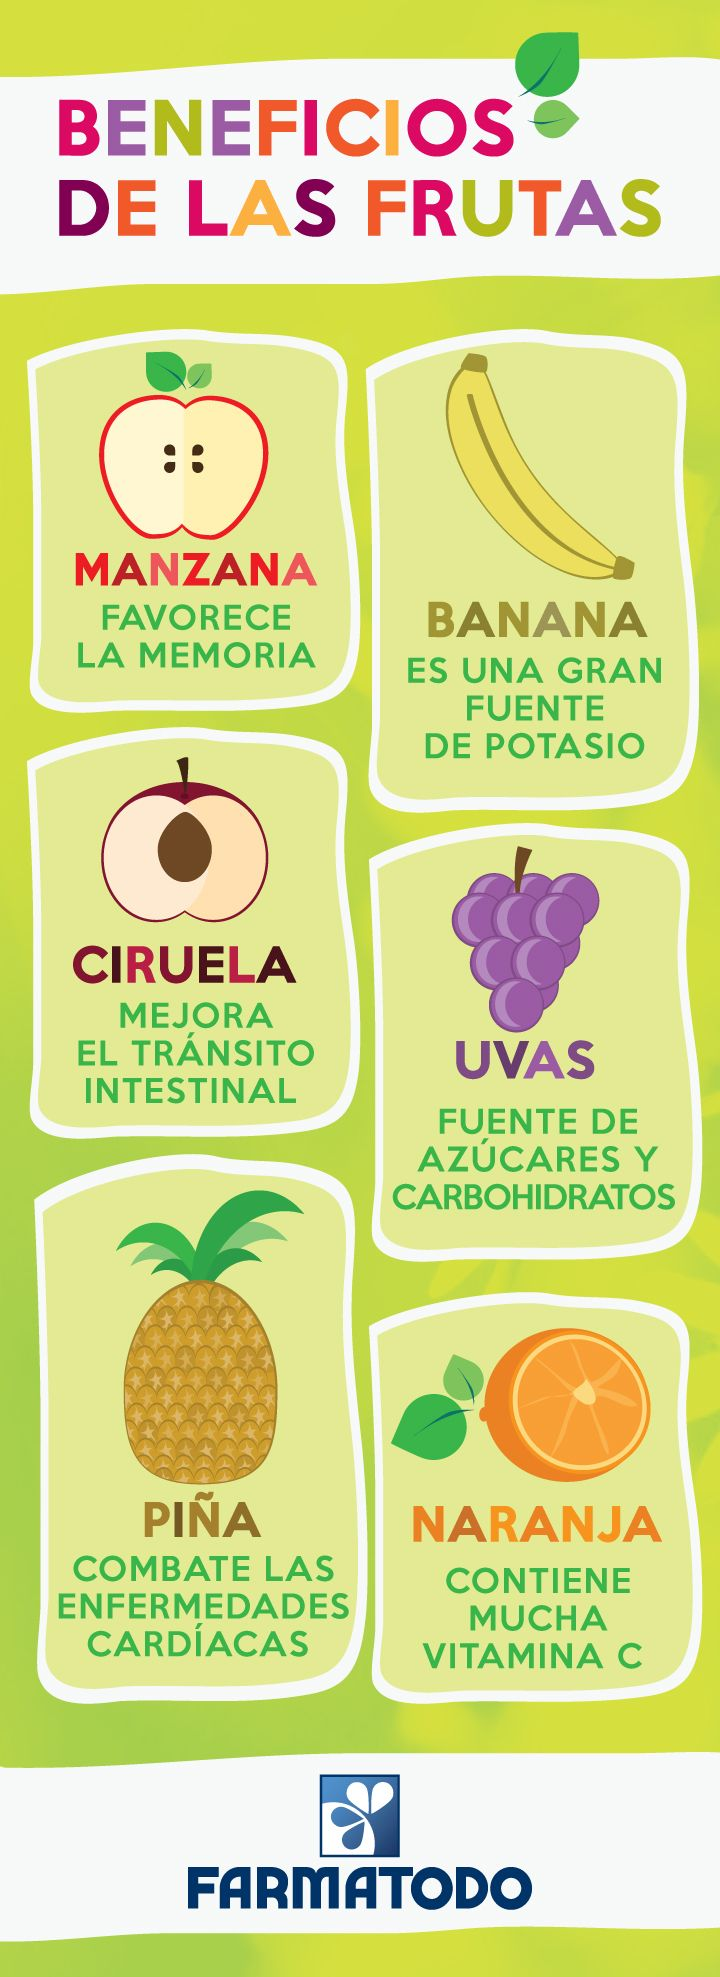 beneficios frutas